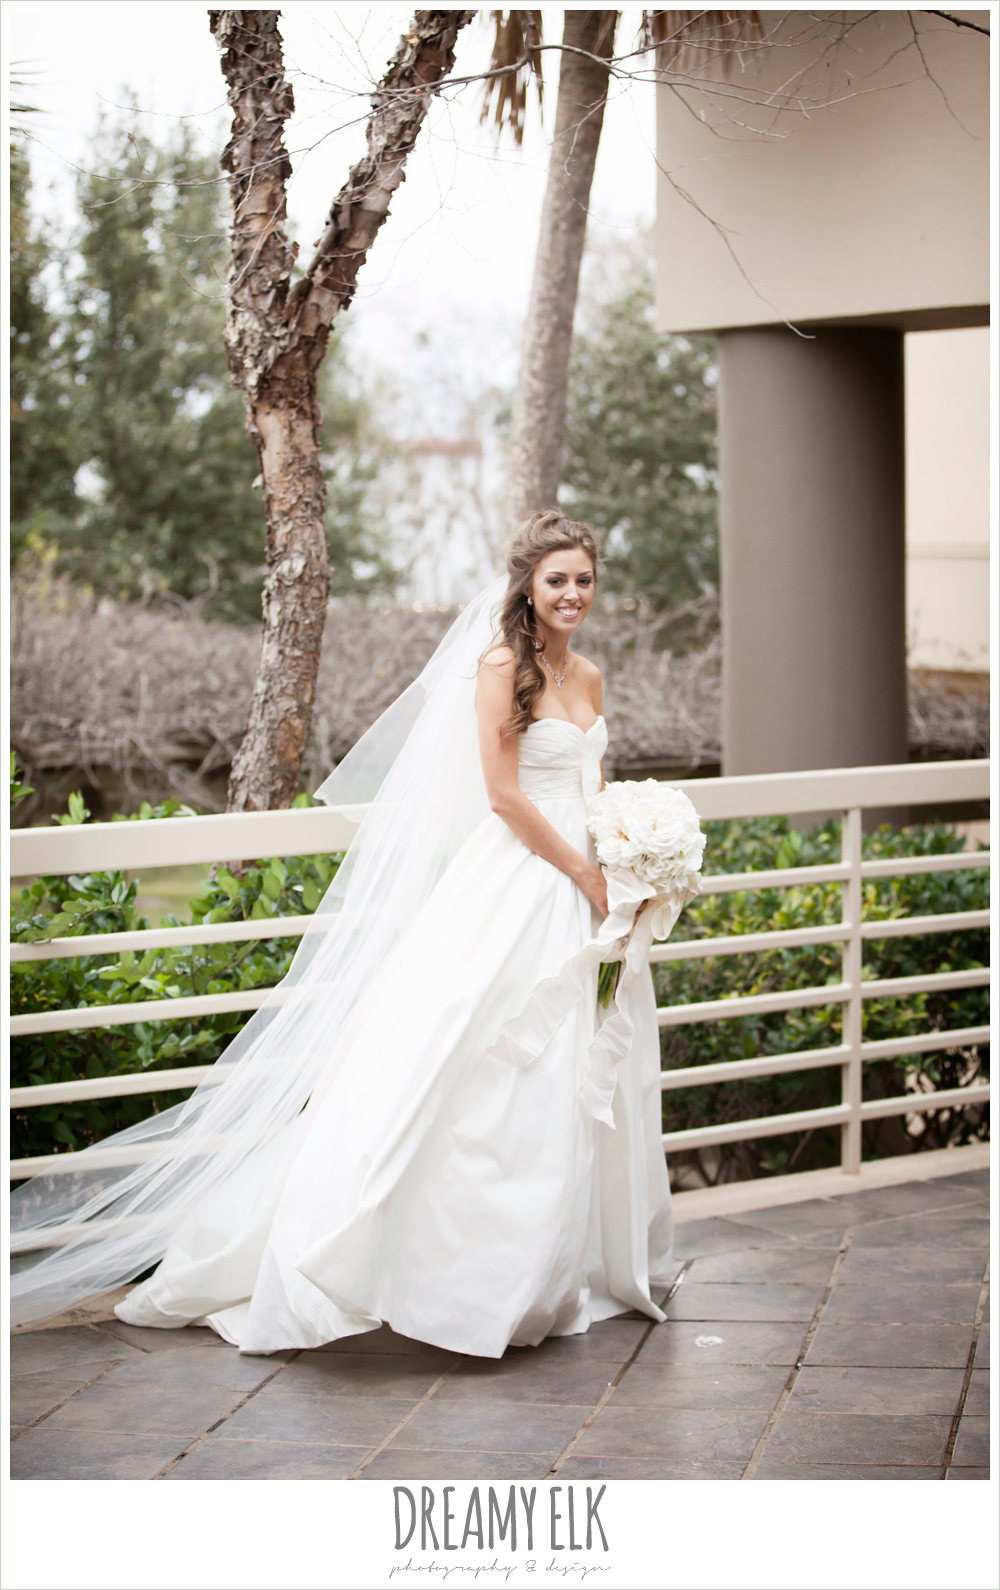 Strapless wedding dress cathedral length veil christmas wedding